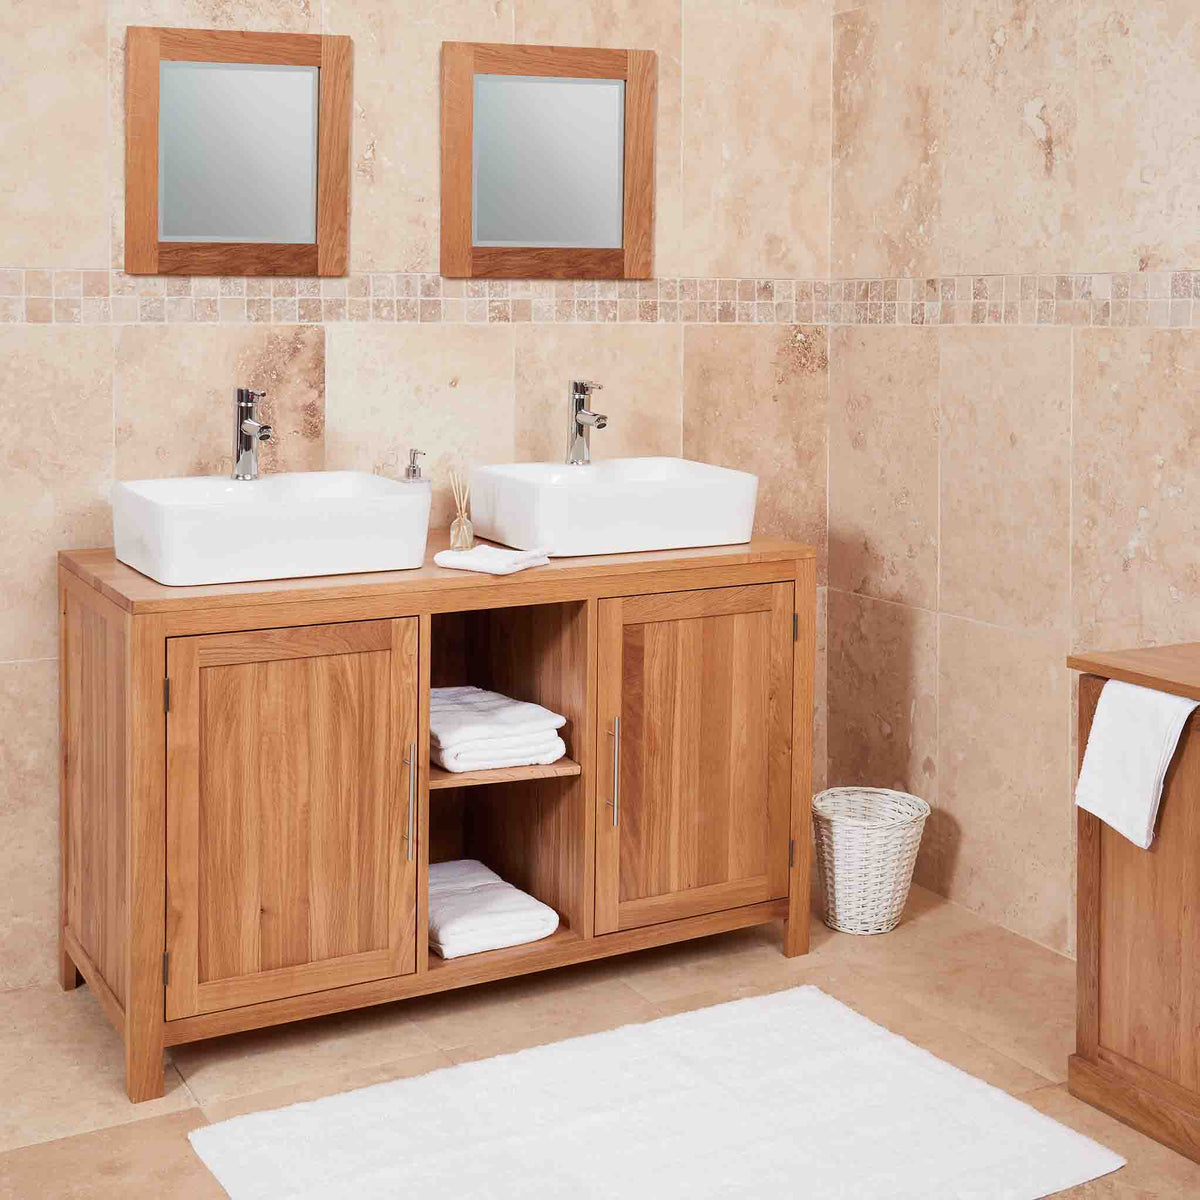 Mobel Oak Bathroom Dual Square Sink Cabinet Unit with 2 Large Cupboard